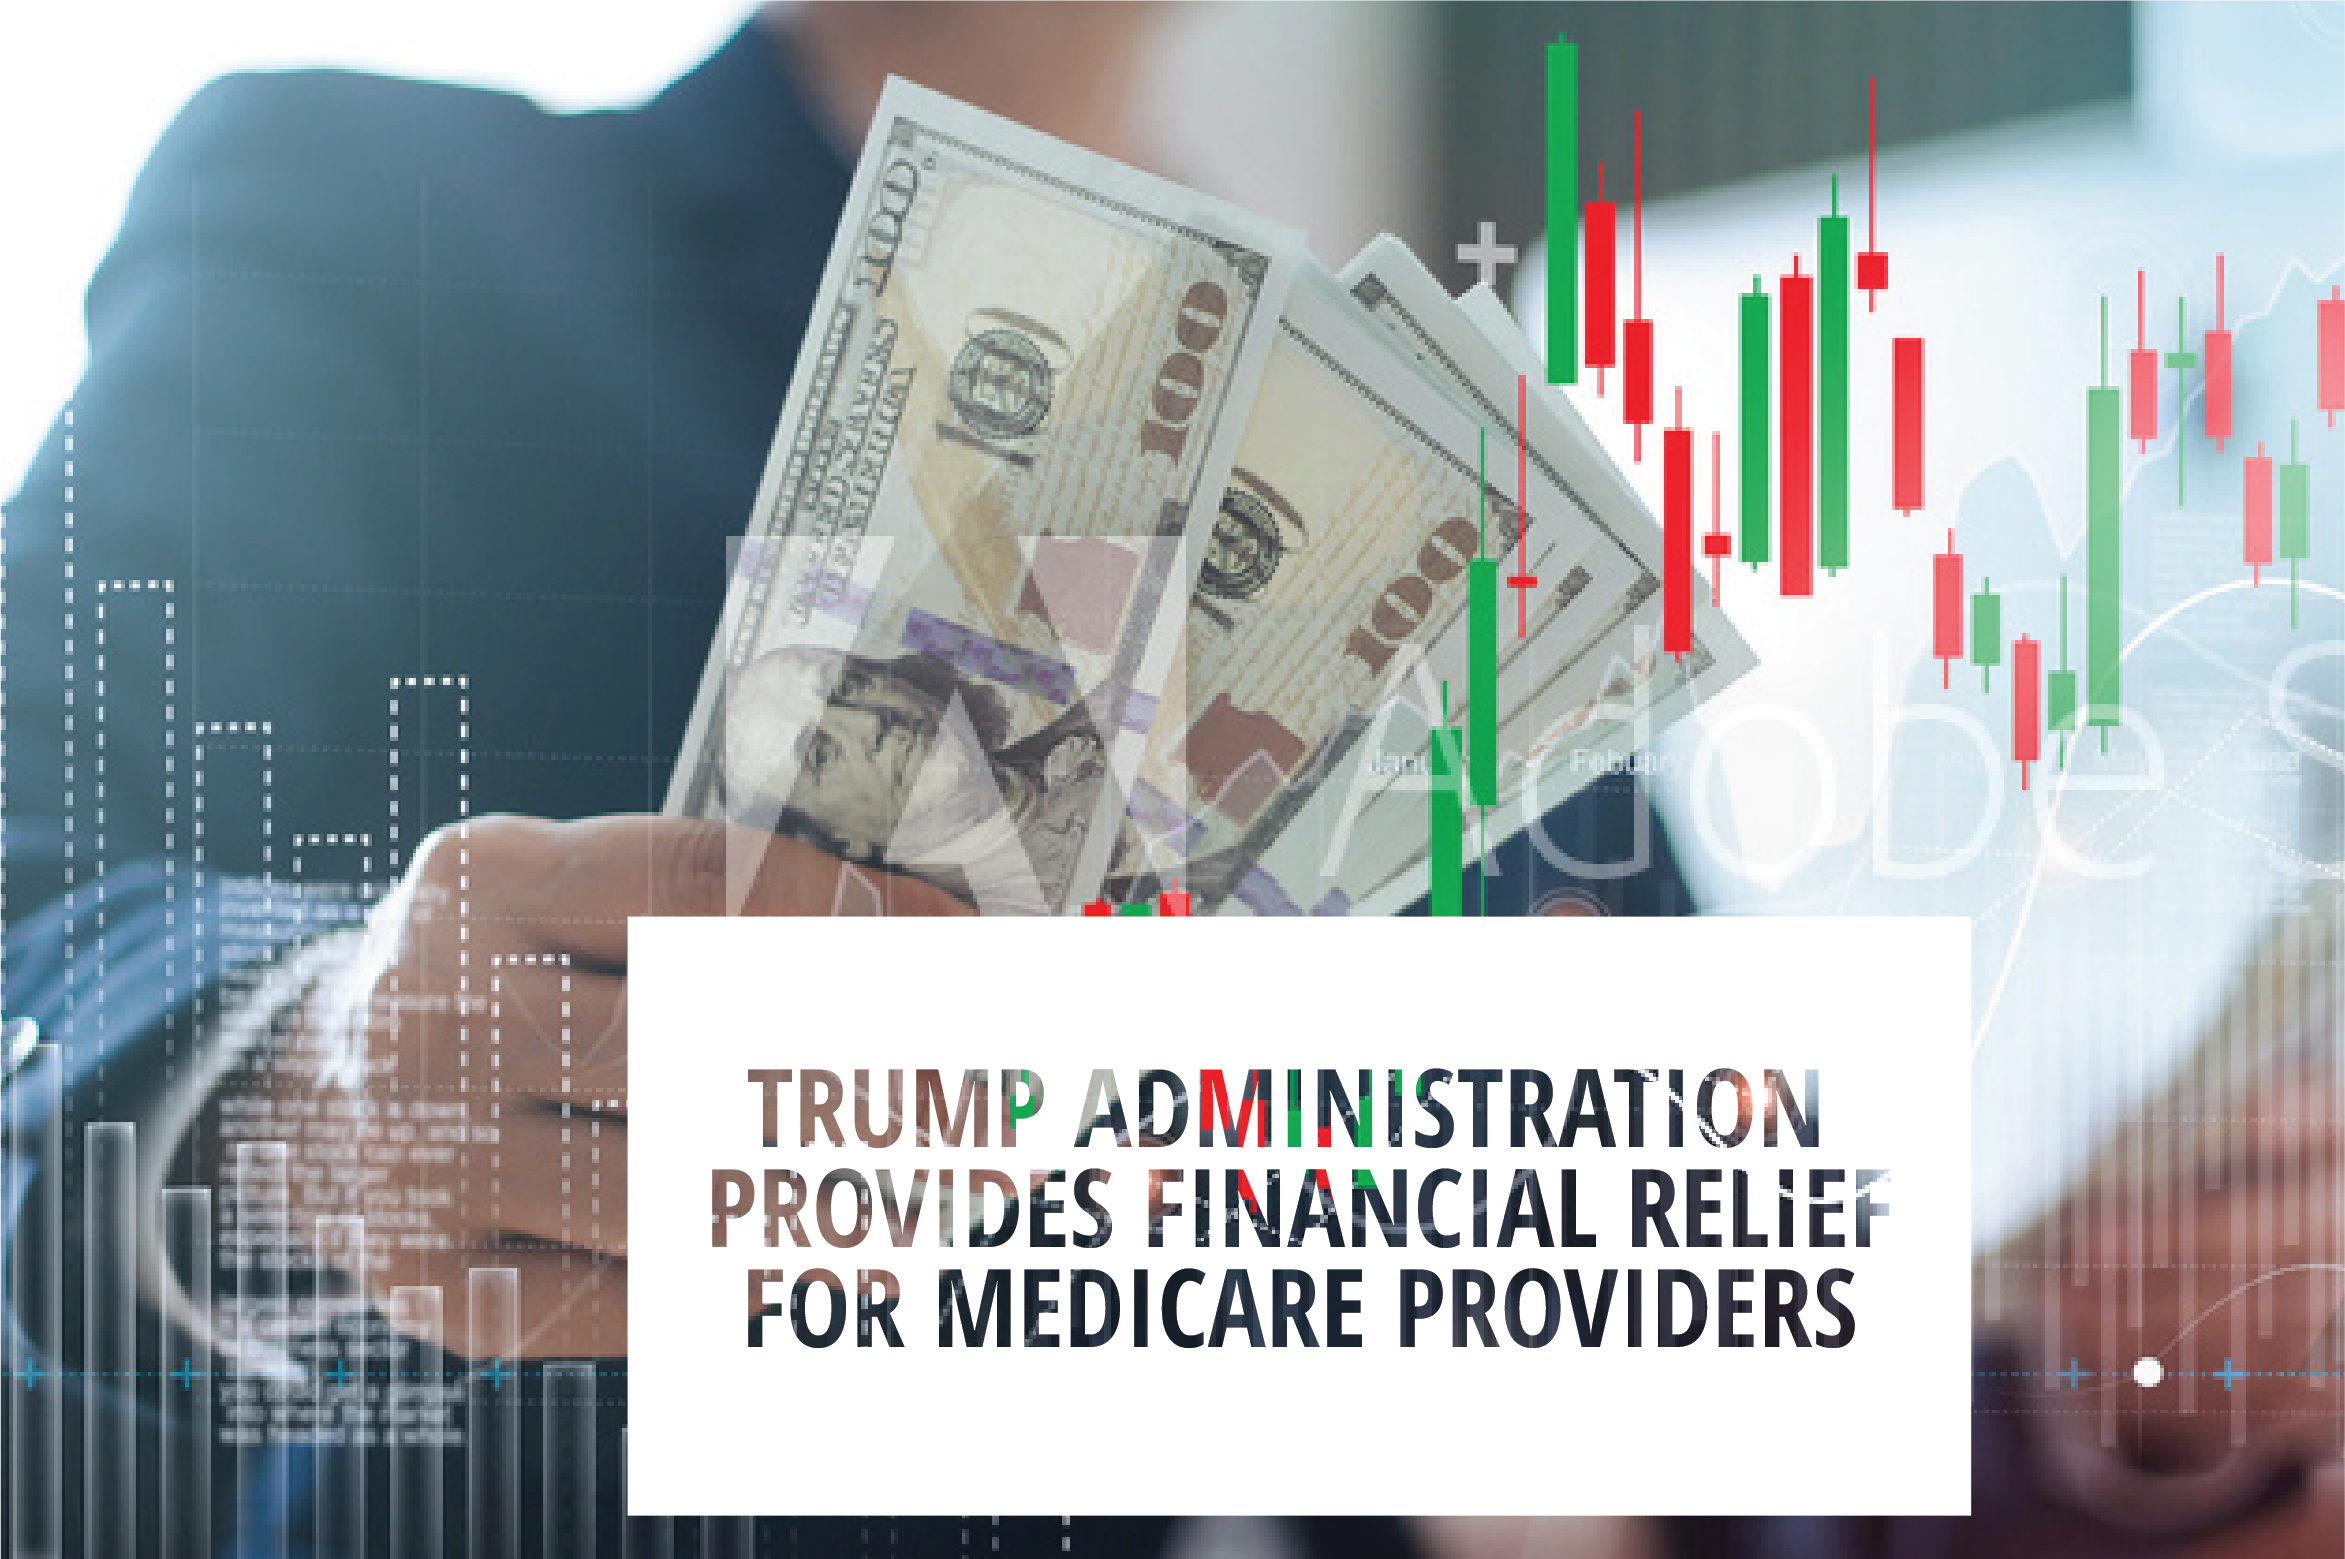 Trump Administration Provides Financial Relief for Medicare Providers